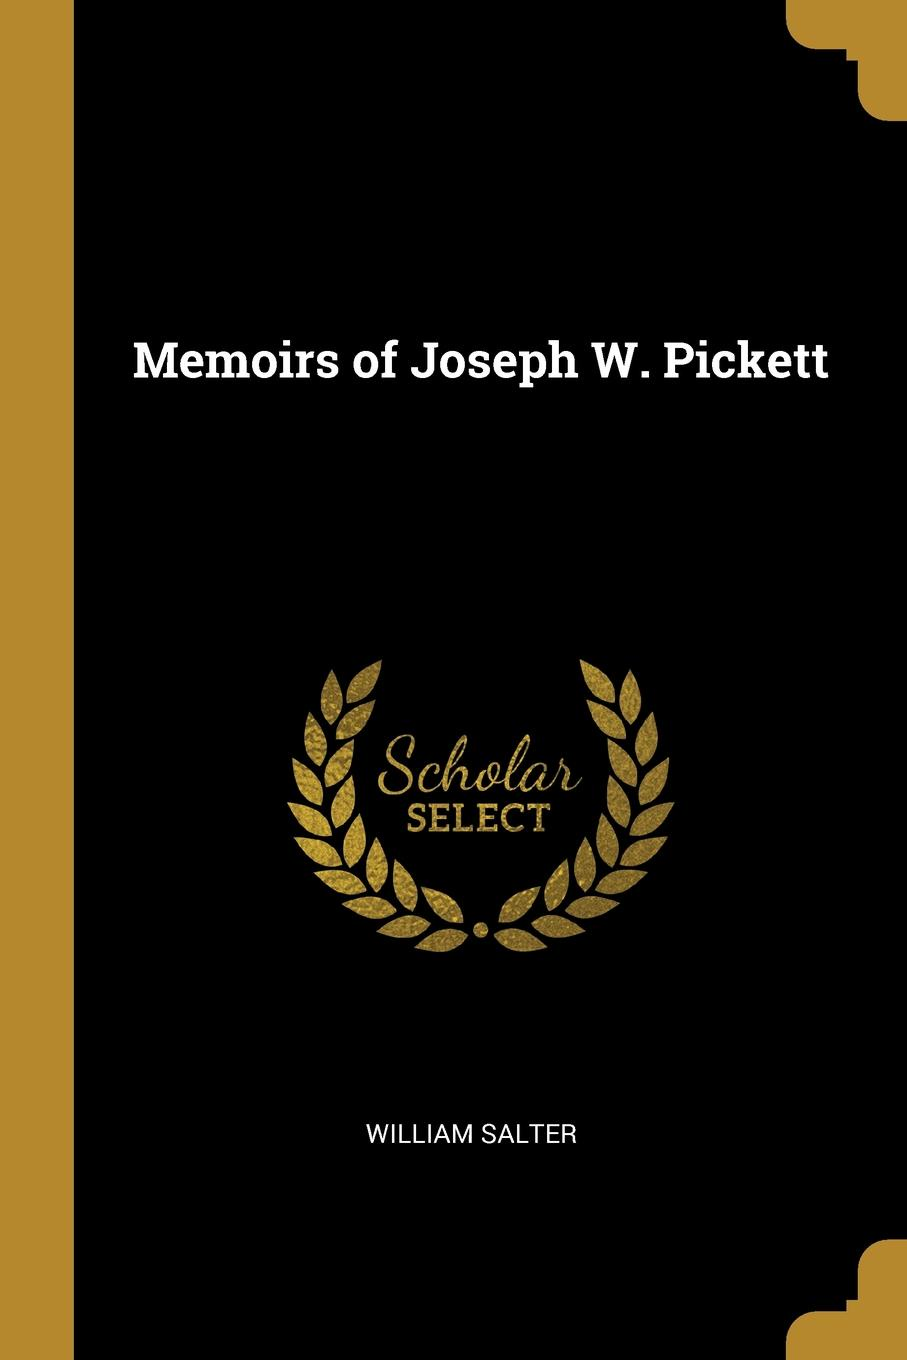 William Salter. Memoirs of Joseph W. Pickett